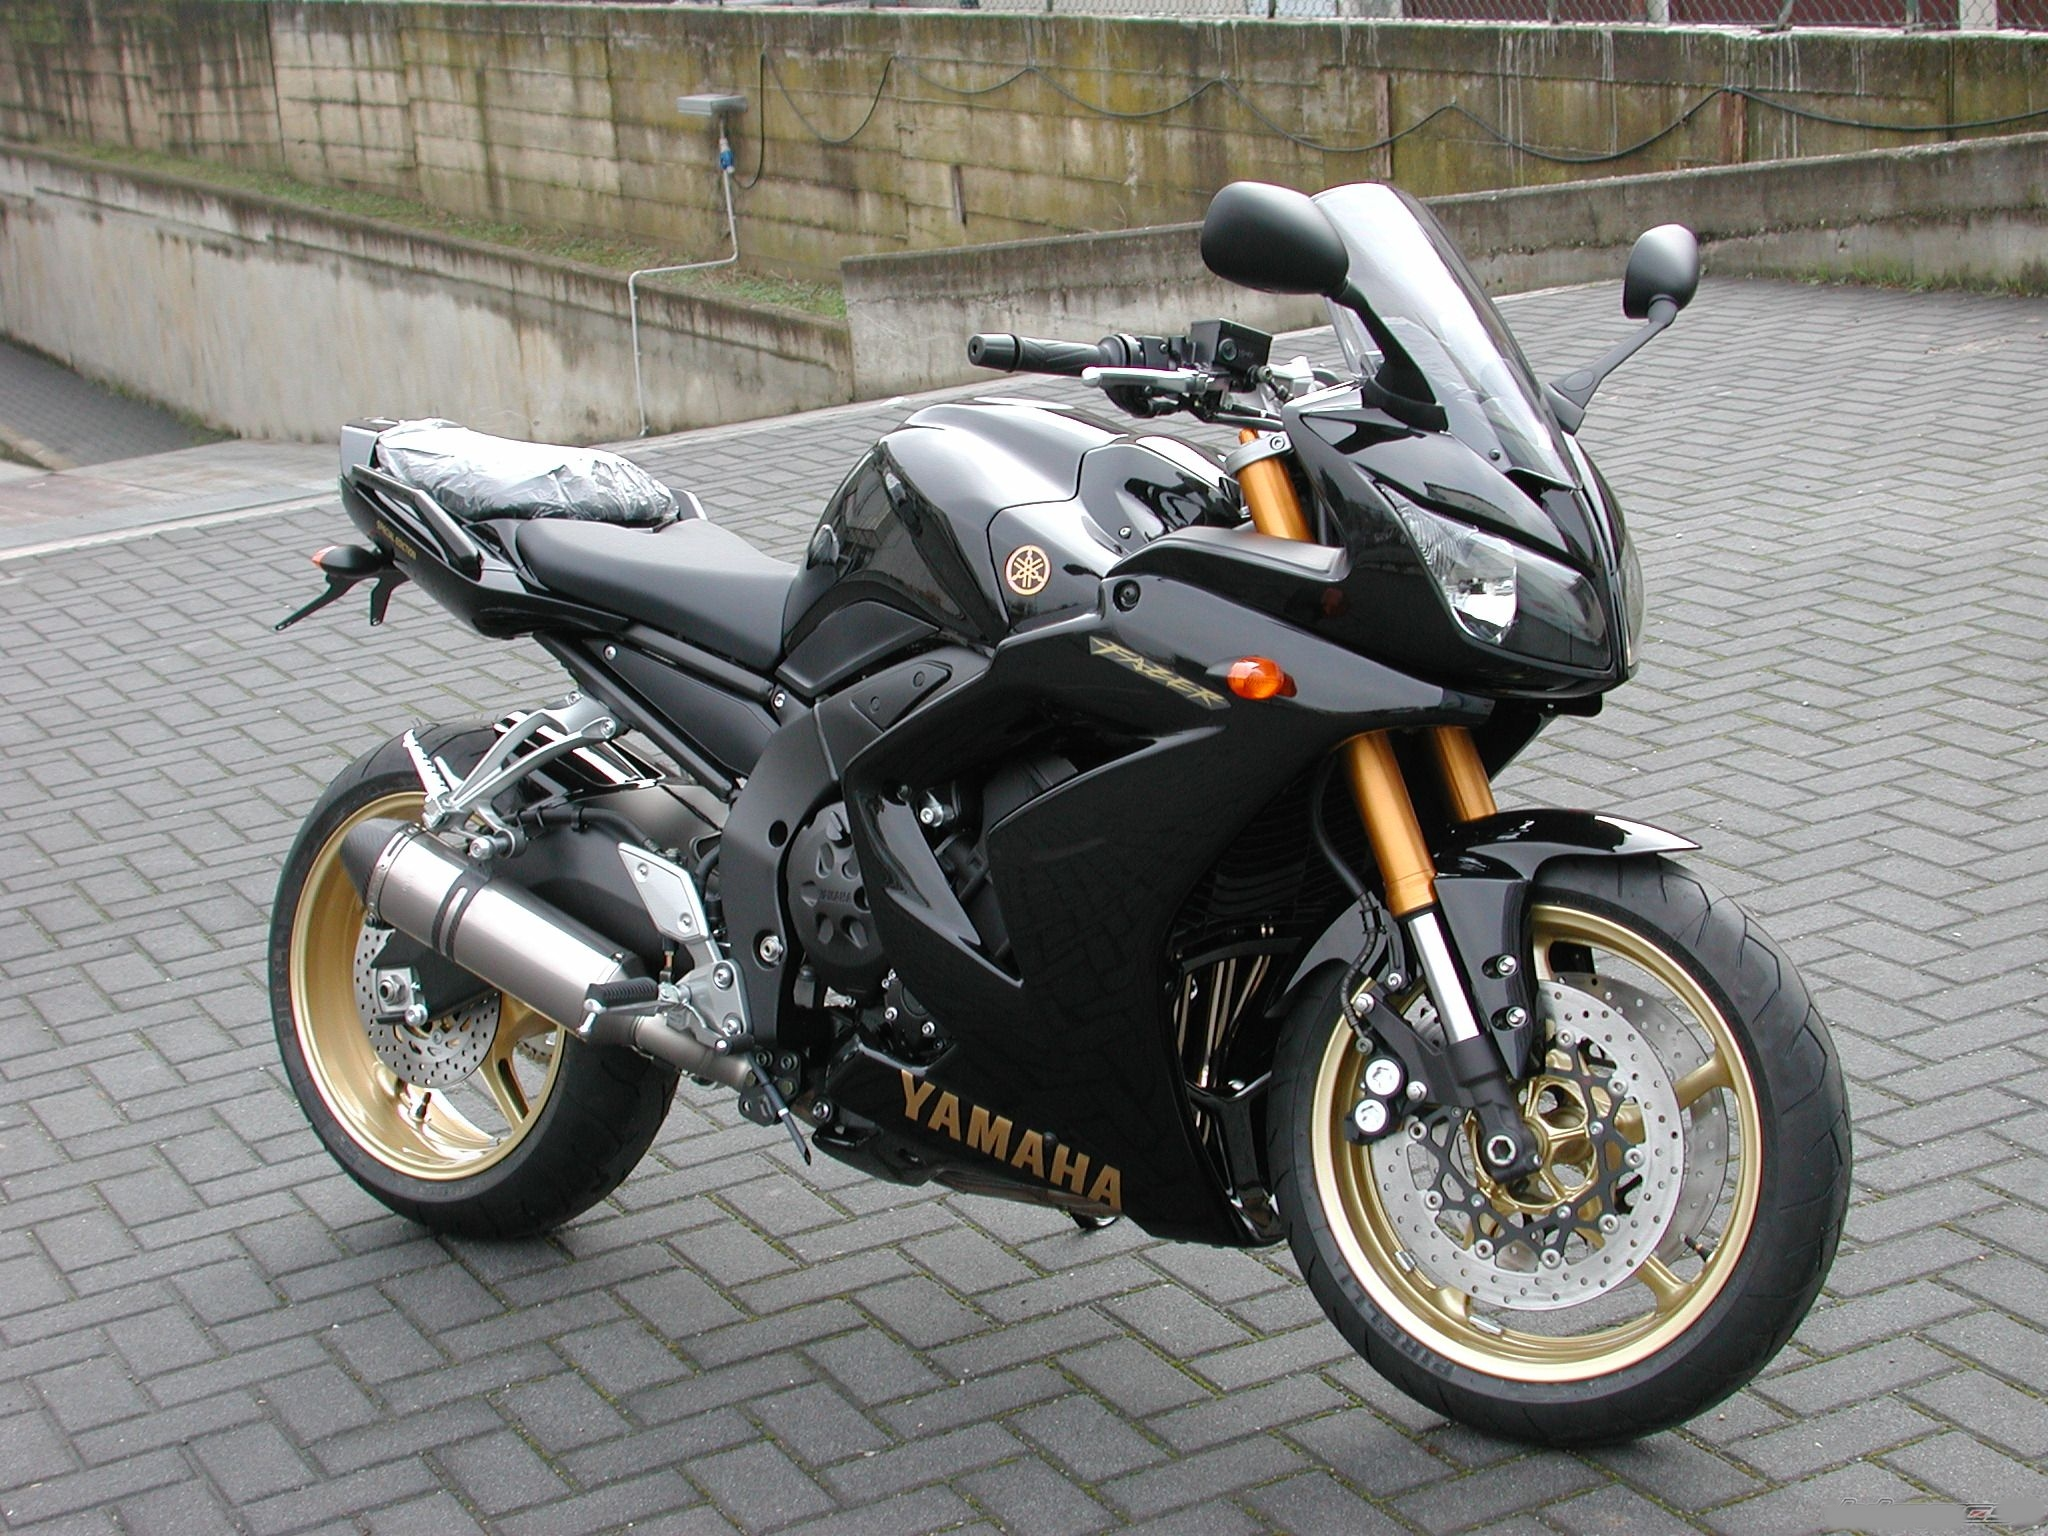 Yamaha fz1 photo - 3